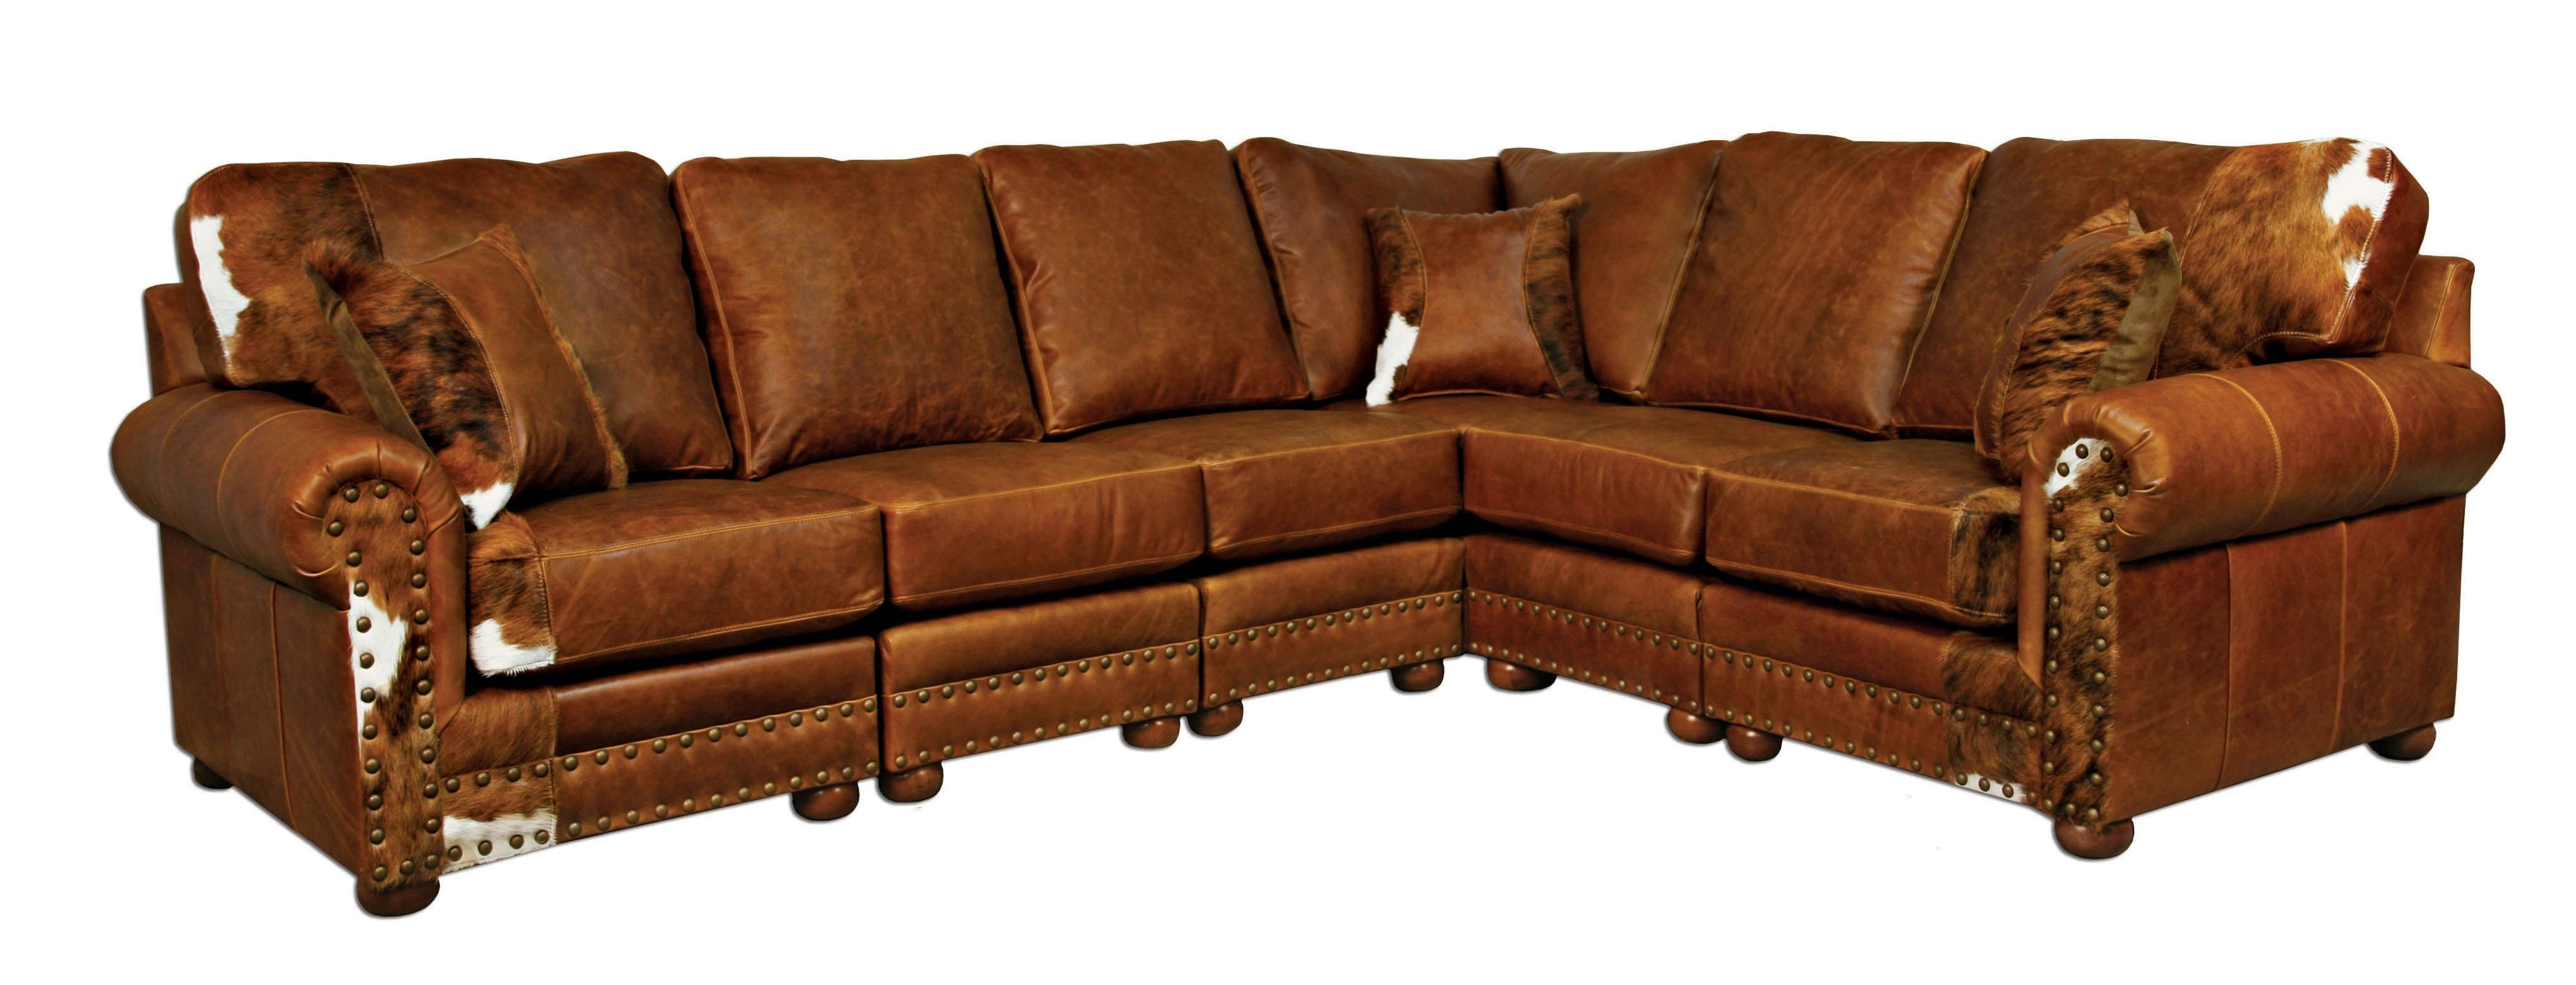 Sectional Sofa Leather Sectionals With Recliners Sofa Leather